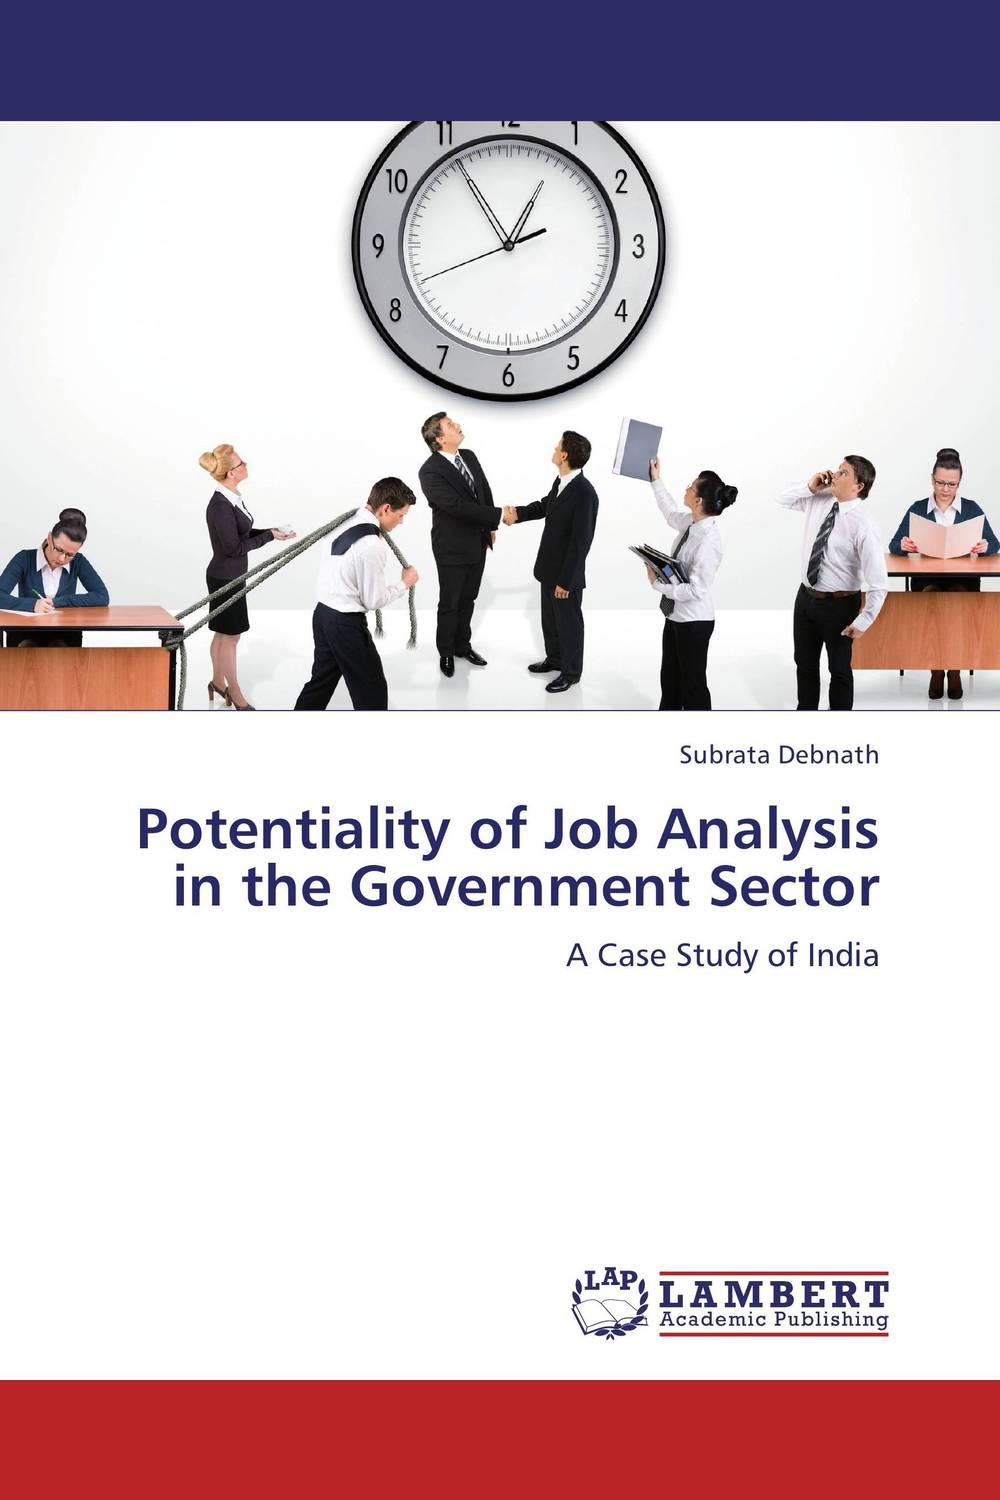 Potentiality of Job Analysis in the Government Sector